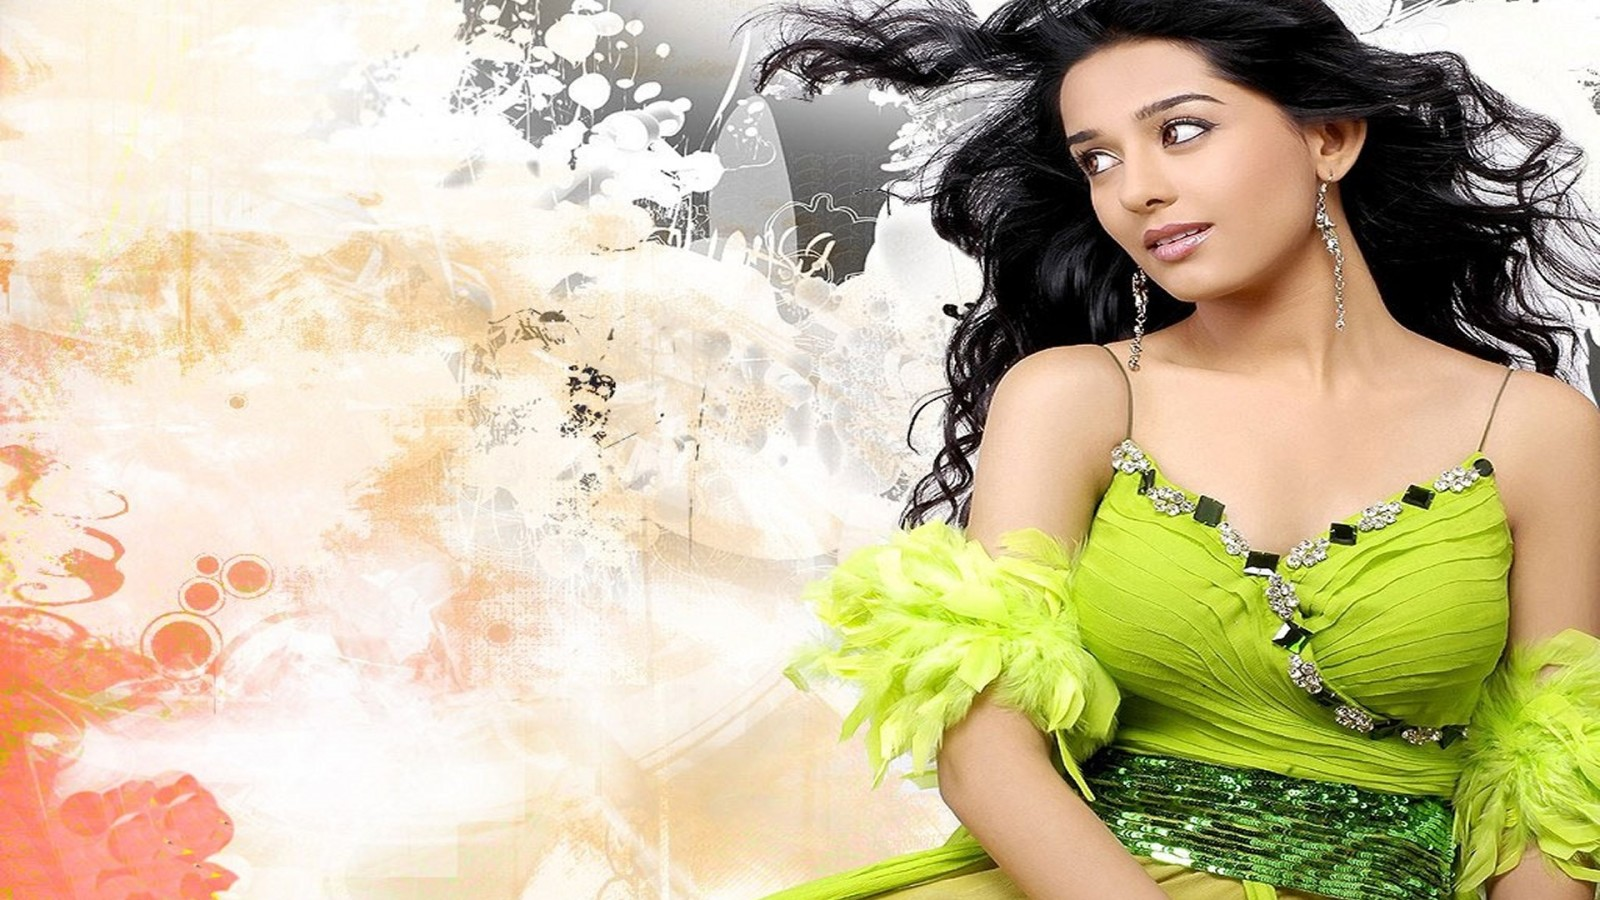 Amrita Rao Beautiful Face HD Wallpapers, Download wallpapers, Wallpapers for free, Free wallpaper, Wallpapers hd free, Wallpapers hd, Mobile wallpapers, Free mobile wallpapers, Wallpapers hd, Wallpapers hd free, Free live wallpapers Live wallpapers, Wallpaper download, Download wallpapers, Free themes wallpapers for mobile, wallpapers for free, Free wallpaper, Hd wallpaper, Wallpapers, Download wallpaper, Wallpaper free, iphone wallpaper, desktop wallpaper, Windows wallpaper, Android wallpaper, hd wallpaper, iphone wallpaper, Live wallpaper, Love wallpaper, Black wallpaper, Hot wallpaper, Download wallpaper, Mobile wallpaper, New wallpaper, Hot and Sexy girls wallpaper,free download hot and sexy girls wallpapers, Sexy Bikini Girls Wallpaper, Free download Bikini wallpapers, Sexy Girl Desktop Wallpaper, sexy girl wallpaper, Hot sexy girl wallpaper for Desktop, Mobile and android phone, Babe Wallpaper free download, Cute Girl Wallpaper, hot girl wallpapers, girl wallpapers, asian girls wallpaper, asian girls wallpapers, gothic sexy girls, asian wallpapers, sad wallpapers, eyes wallpaper, gothic wallpaper free, gothic girl wallpaper, wonder girl wallpaper, wonder girls wallpaper, wonder girls wallpapers, Sunny Lion Hot wallpaper,Bikini Girl bikini wallpaper full hd, Bikini Girl bikini wallpapers, Bikini Girl bikini wallpaper free download, Bikini Girl bikini wallpapers hd, Bikini Girl bikini wallpaper download, Bikini Girl bikini wallpaper 1920×1080, Bikini Girl bikini wallpapers for desktop, Bikini Girl bikini wallpaper hot, Bikini Girl bikini wallpaper hd, Bikini Girl bikini wallpaper, Bikini Girl bikini wallpaper for android, Bikini Girl bikini wallpaper for iphone, Bikini Girl Hot 2015, Bikini Girl hottest wallpapers hd, Bikini Girl hottest wallpaper collection,,Bikini Girl hottest wallpaper download, Bikini Girl hottest wallpaper hd, Bikini Girl hottest wallpaper ever, Bikini Girl hottest wallpaper, Bikini Girl hottest wallpaper free download, Bikini Girl hottest wallpaper for mobile, Bikini Girl hot wallpaper actress, Bikini Girl hot wallpaper android, Bikini Girl hot wallpaper asian, Bikini Girl hot wallpaper 1080, Bikini Girl hot wallpaper backgrounds, Bikini Girl hot wallpaper bikini, Bikini Girl cute wallpaper 2015, Bikini Girl cute wallpapers, Bikini Girl cute wallpapers tumblr, Bikini Girl cute wallpapers pinterest, Bikini Girl cute wallpapers for iphone, Bikini Girl cute wallpapers for ipad, Bikini Girl cute wallpaper quotes, Bikini Girl cute wallpapers hd, Bikini Girl cute wallpaper tumblr, Bikini Girl cute wallpaper pinterest, Bikini Girl cute wallpaper images, Bikini Girl cute wallpaper desktop, Bikini Girl cute wallpaper girl, Bikini Girl cute wallpaper hd, Bikini Girl cute wallpaper hq, Bikini Girl cute wallpaper iphone, Bikini Girl hot girl wallpaper 2015, Bikini Girl hot girl wallpapers, Bikini Girl hot girl wallpaper 1920×1080, Bikini Girl hot girl wallpaper iphone, Bikini Girl hot girl wallpaper for phone, Bikini Girl hot girl wallpaper 1080p, Bikini Girl hot girl wallpapers for mac, Bikini Girl hot girl wallpaper images, Bikini Girl hot girl wallpaper download, Bikini Girl hot girl wallpaper for android, Bikini Girl hot girl wallpaper hd, Bikini Girl hot girl wallpaper android.